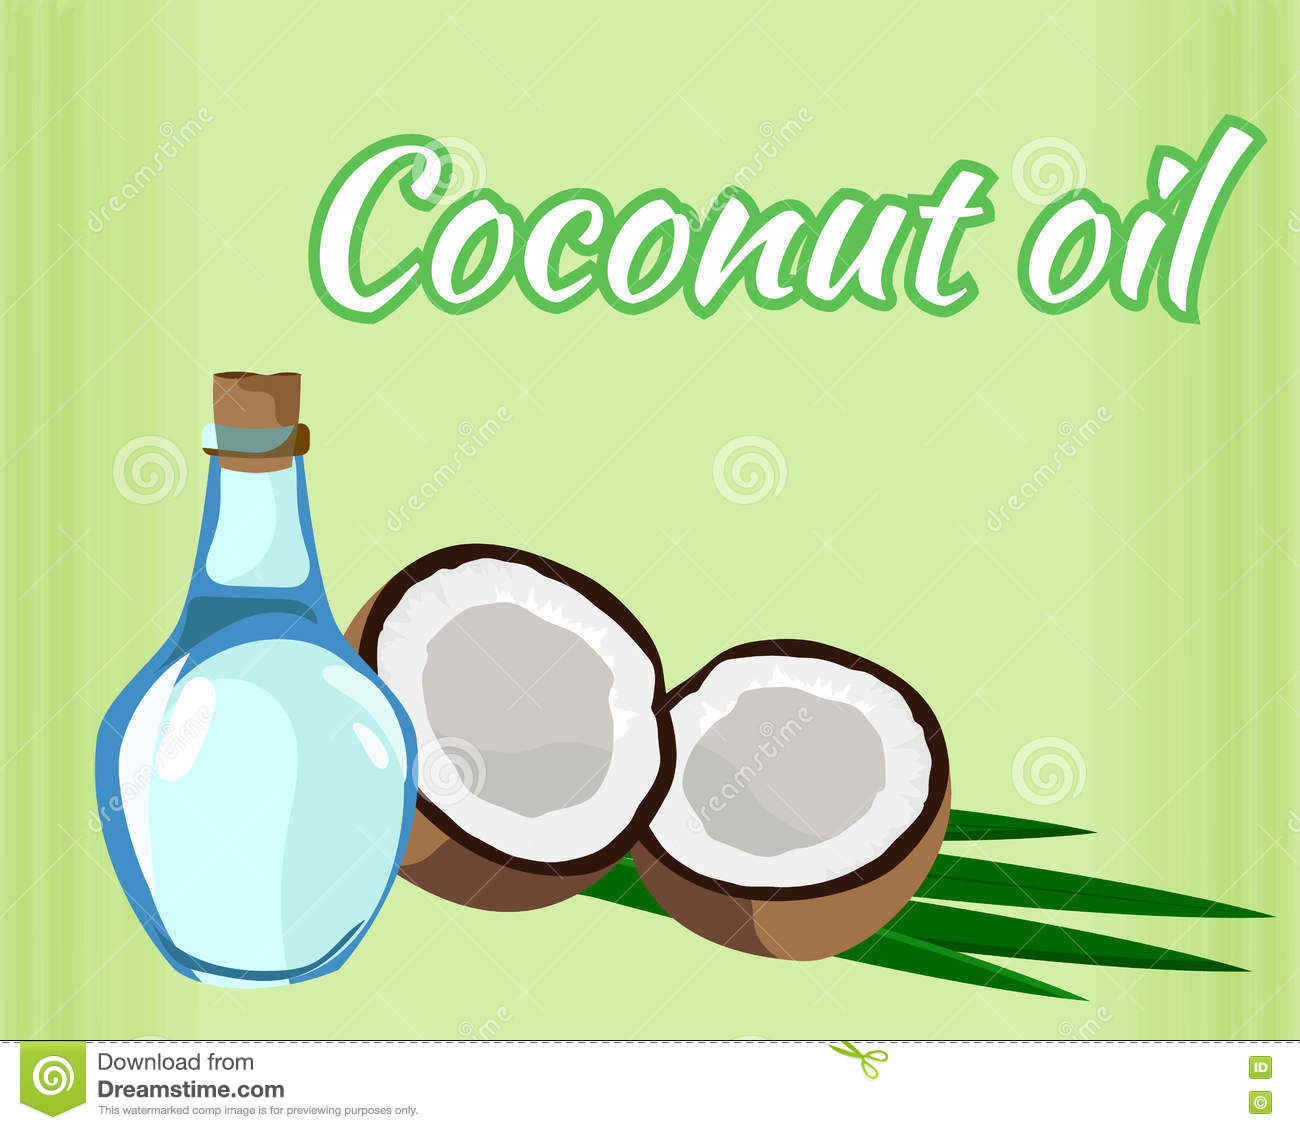 Coconut oil is your personal cosmetologist and doctor 3